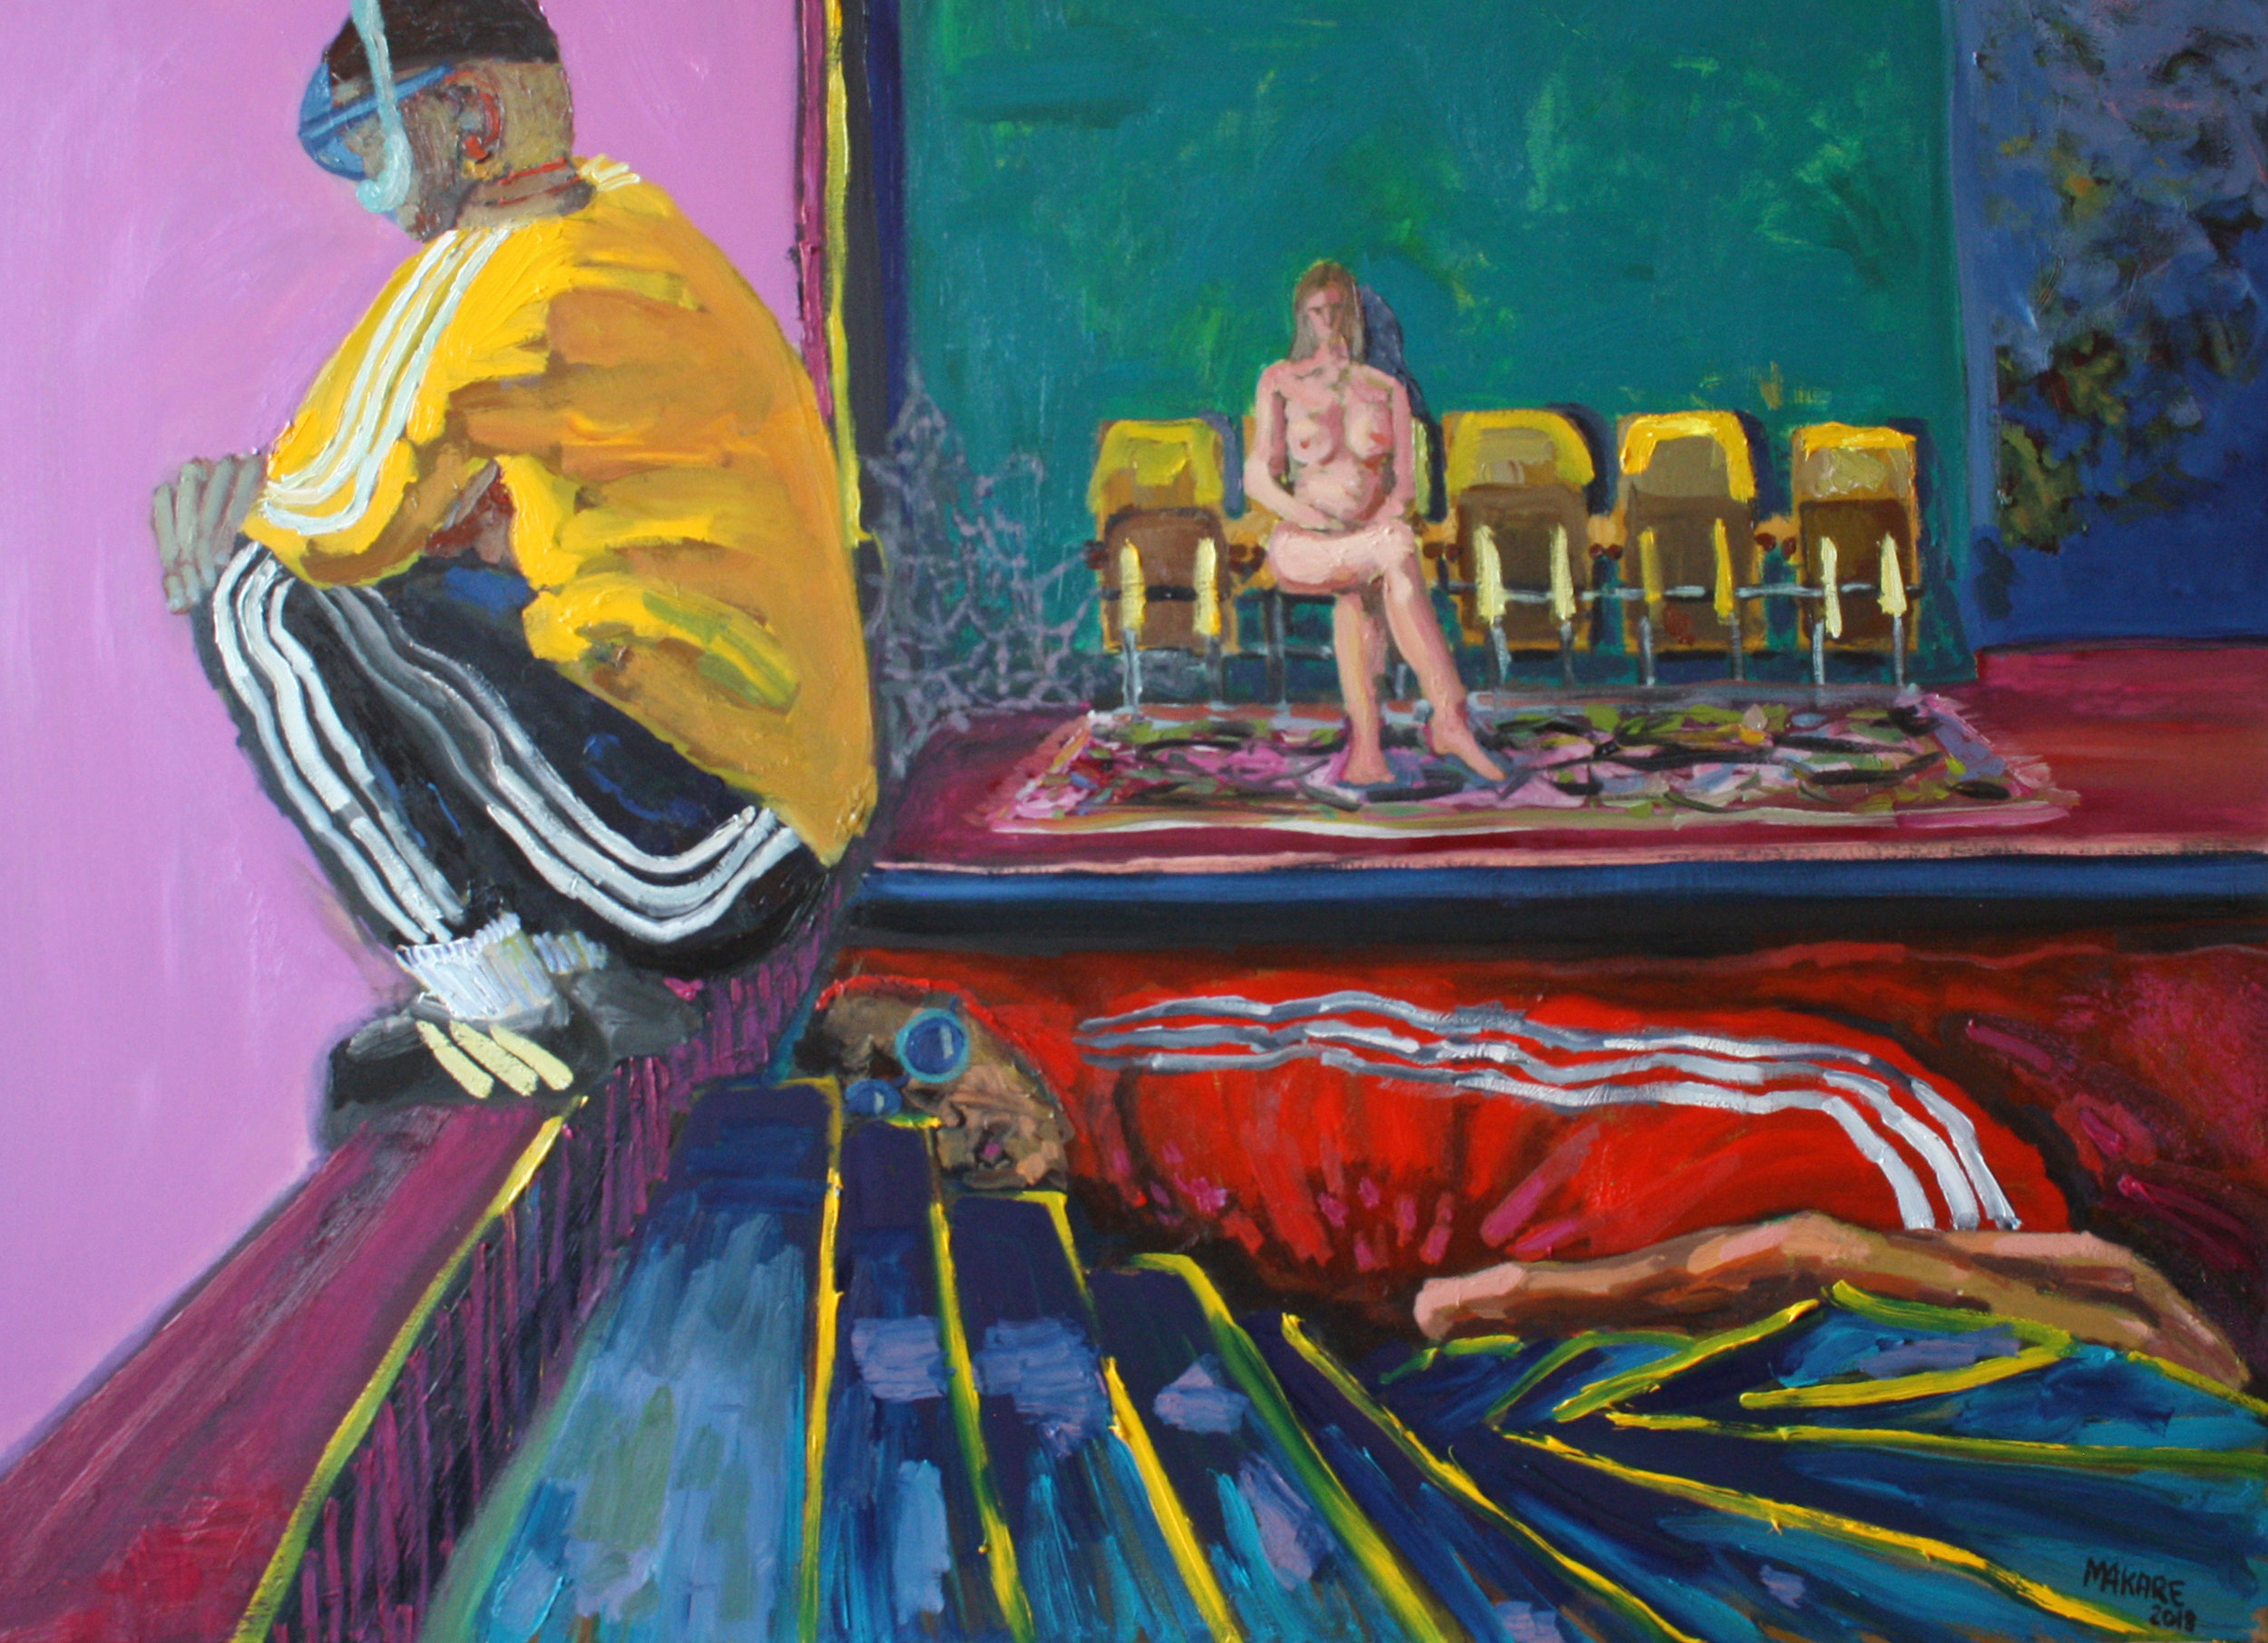 "Future and past of the micro-district theater, 39.3"" x 55.1"" (100 x 140 cm), oil on canvas, 2018"